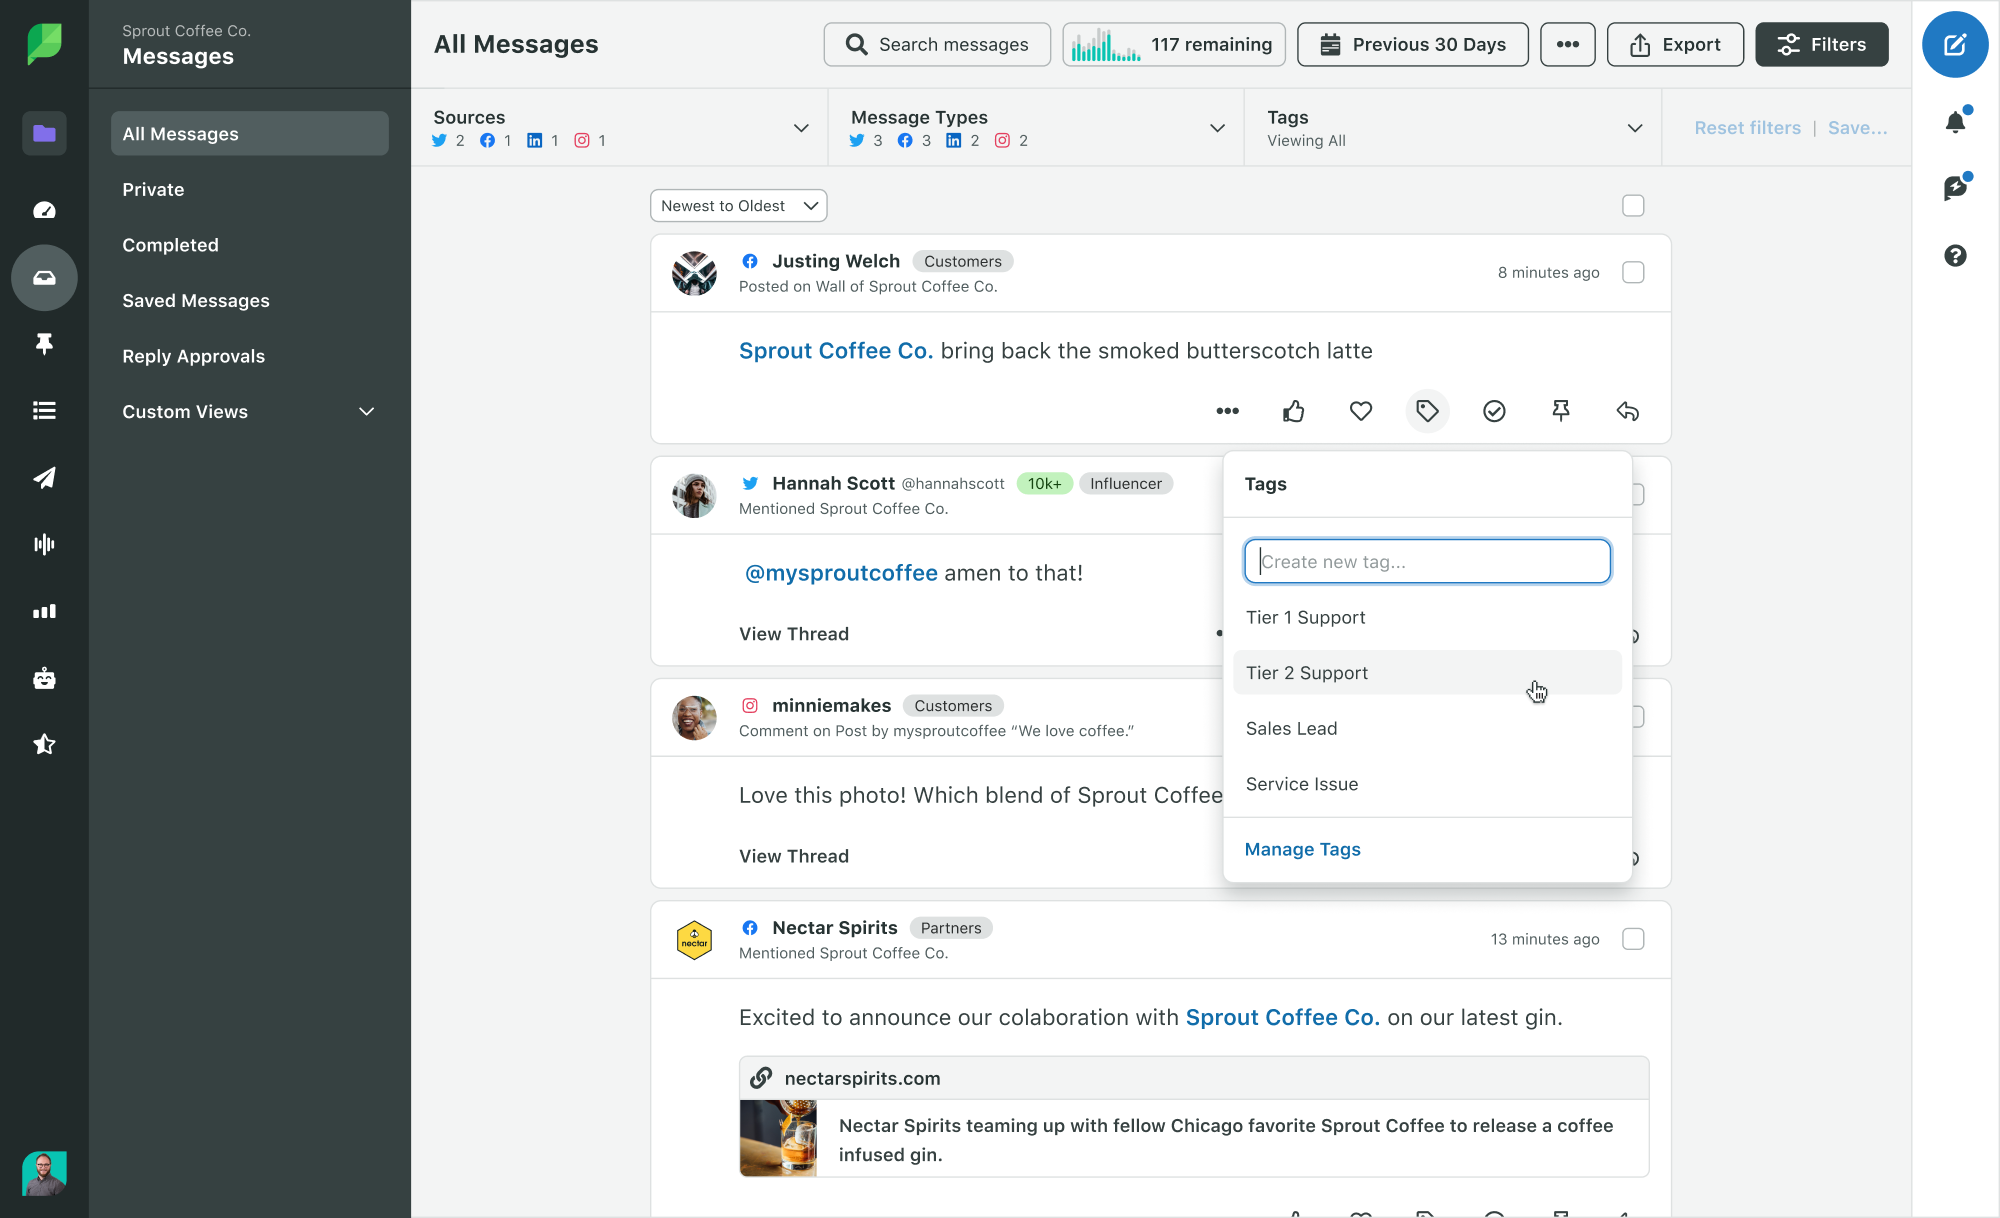 Sprout Social Smart Inbox support tagging and Listening tool